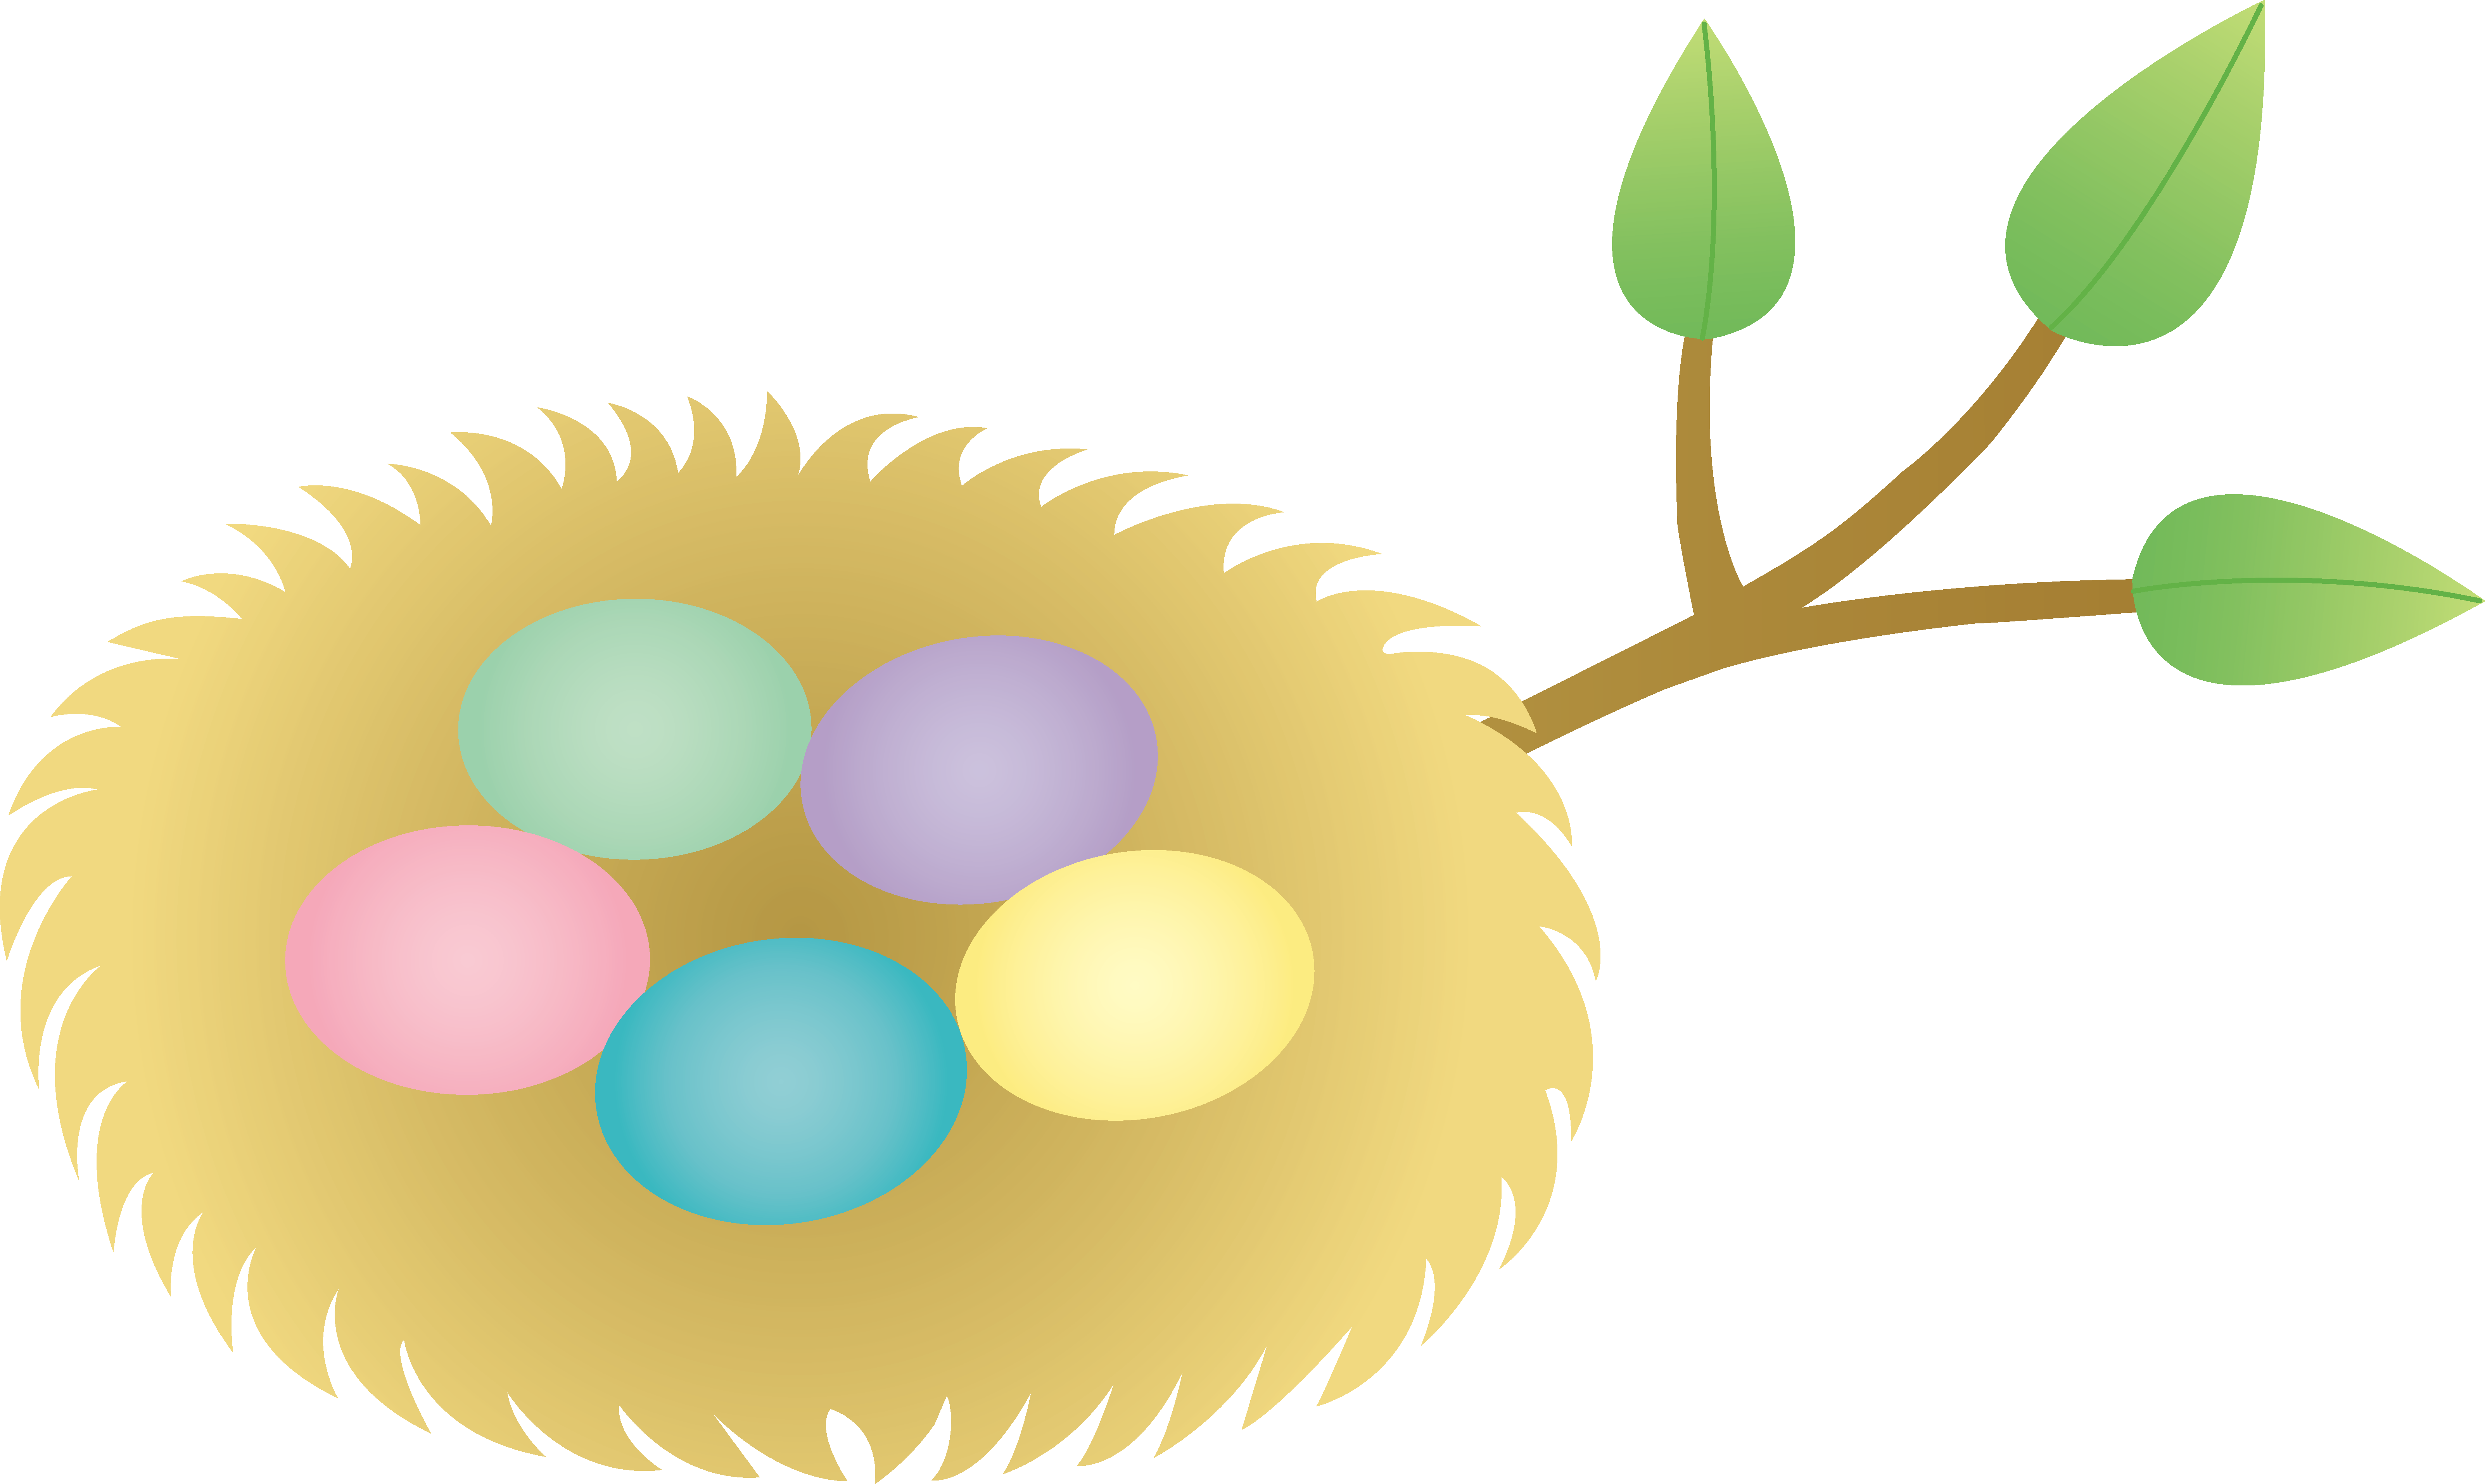 6408x3828 Egg Clipart, Suggestions For Egg Clipart, Download Egg Clipart